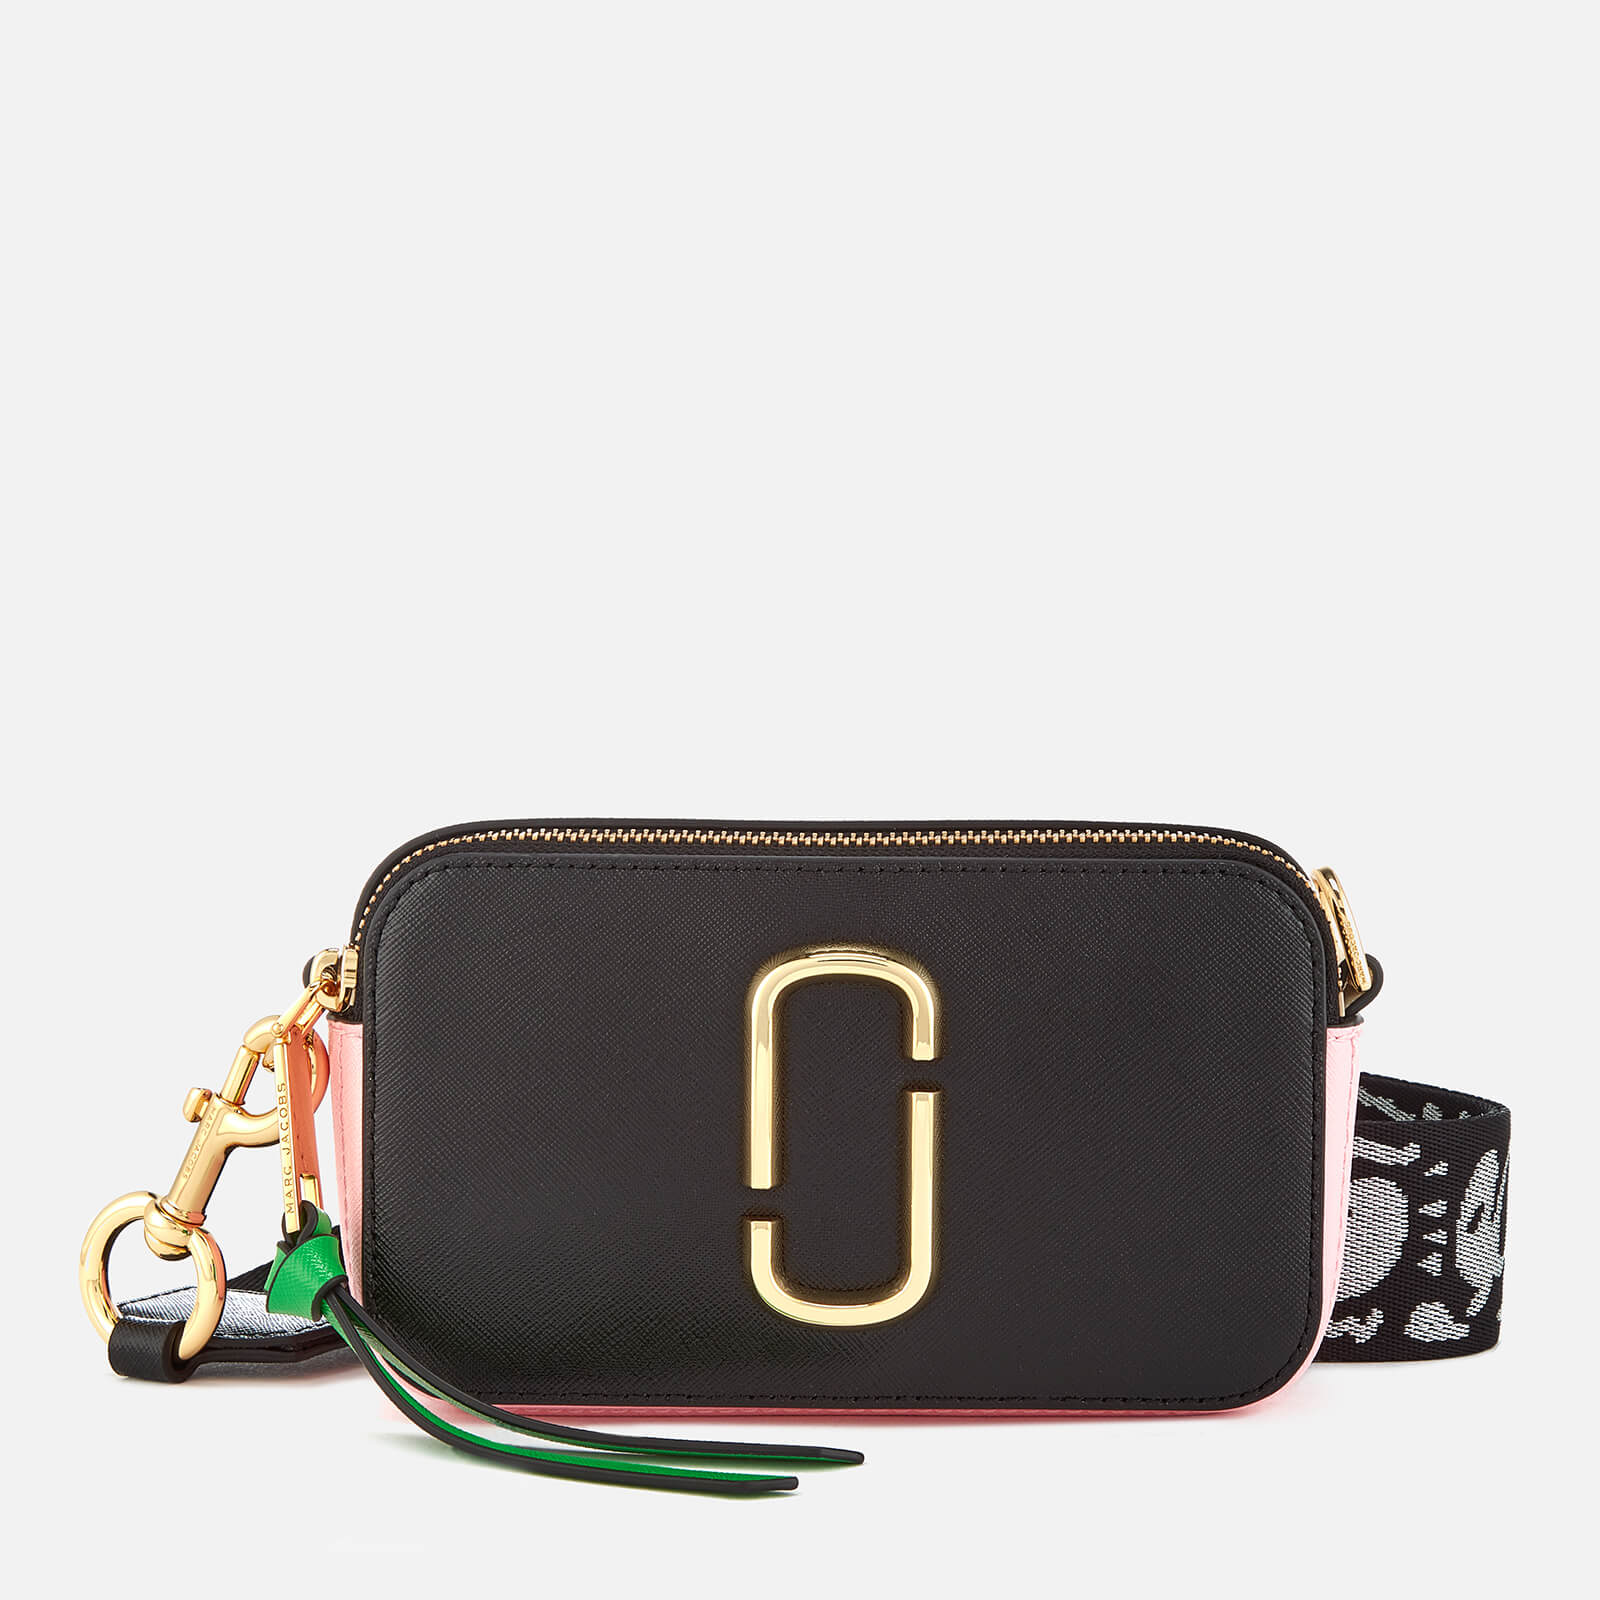 9bc890740e1d Marc Jacobs Women s Snapshot Cross Body Bag - Black Baby Pink - Free ...